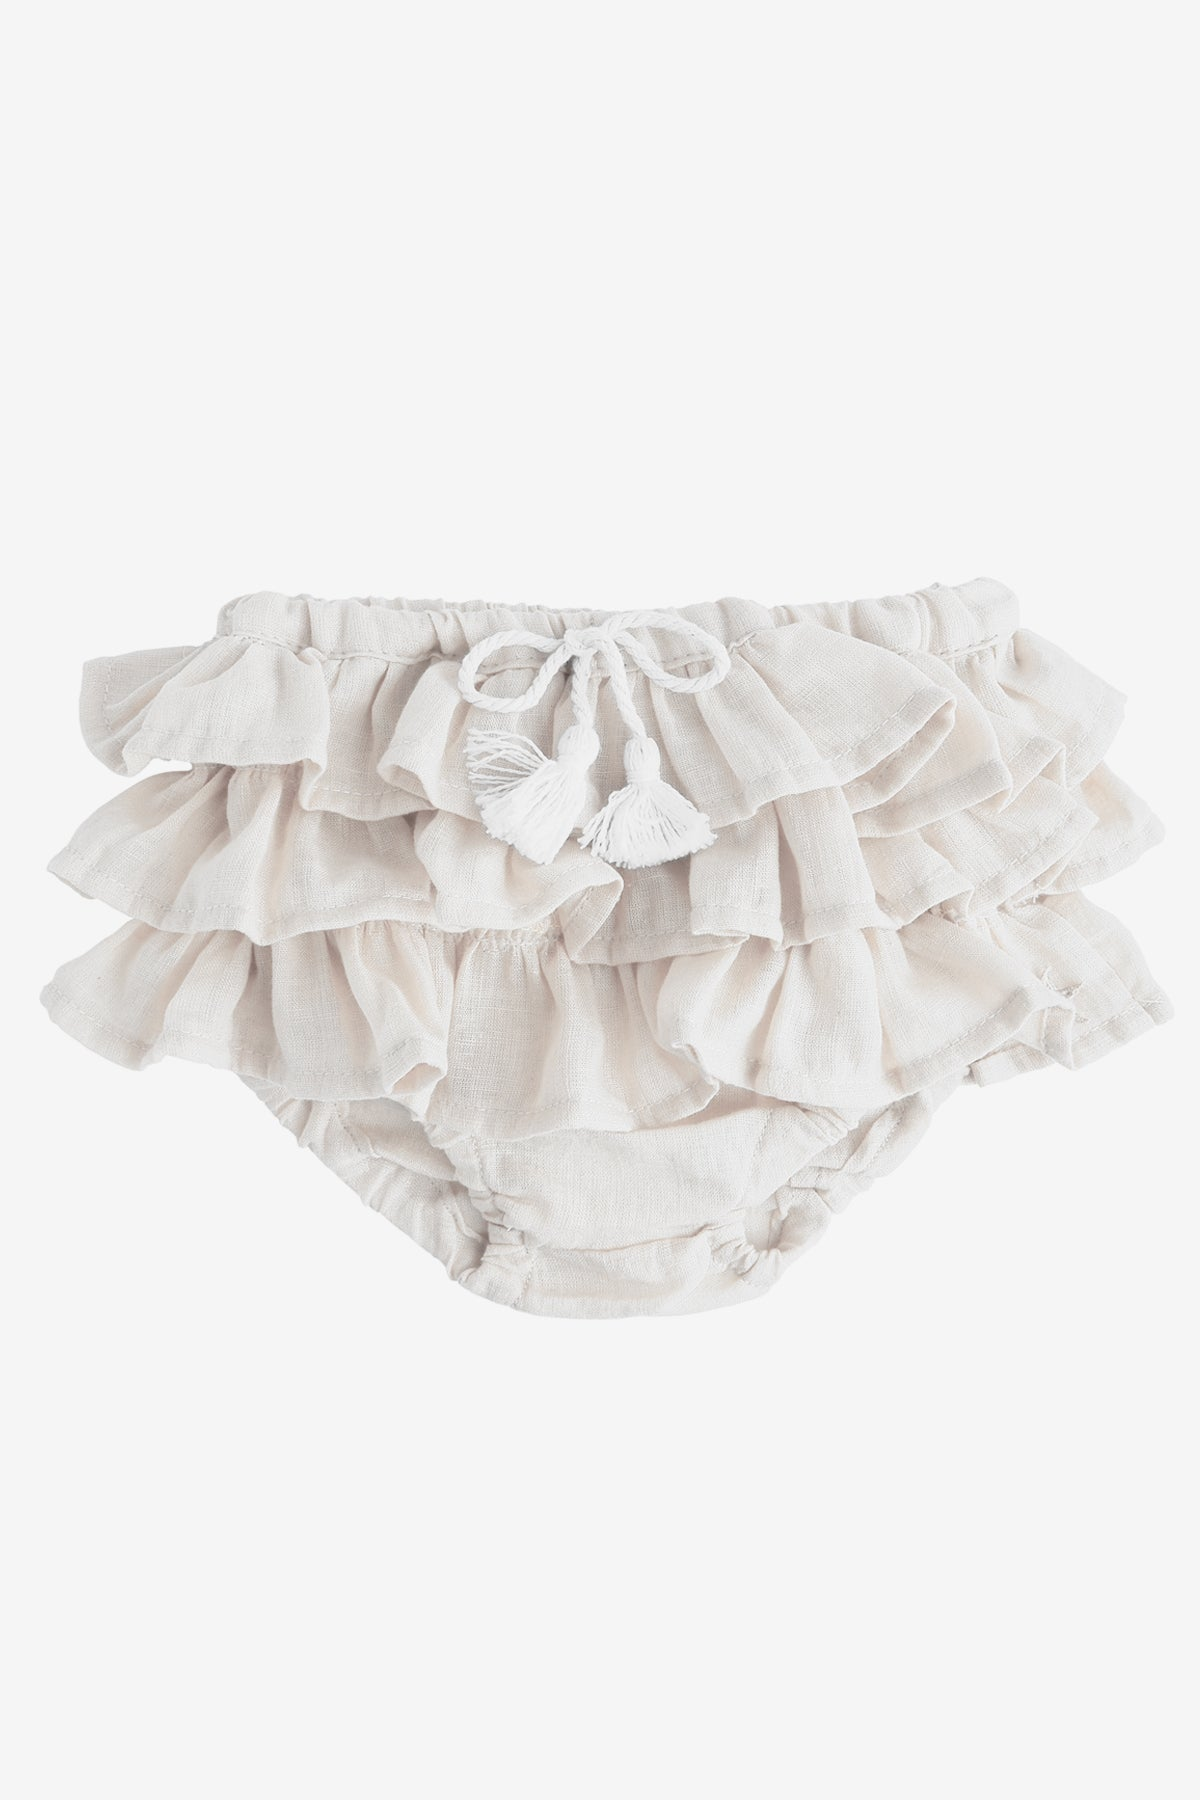 c491bf3c5e6 Tocoto Vintage Tiered Ruffle Bloomer - Mini Ruby